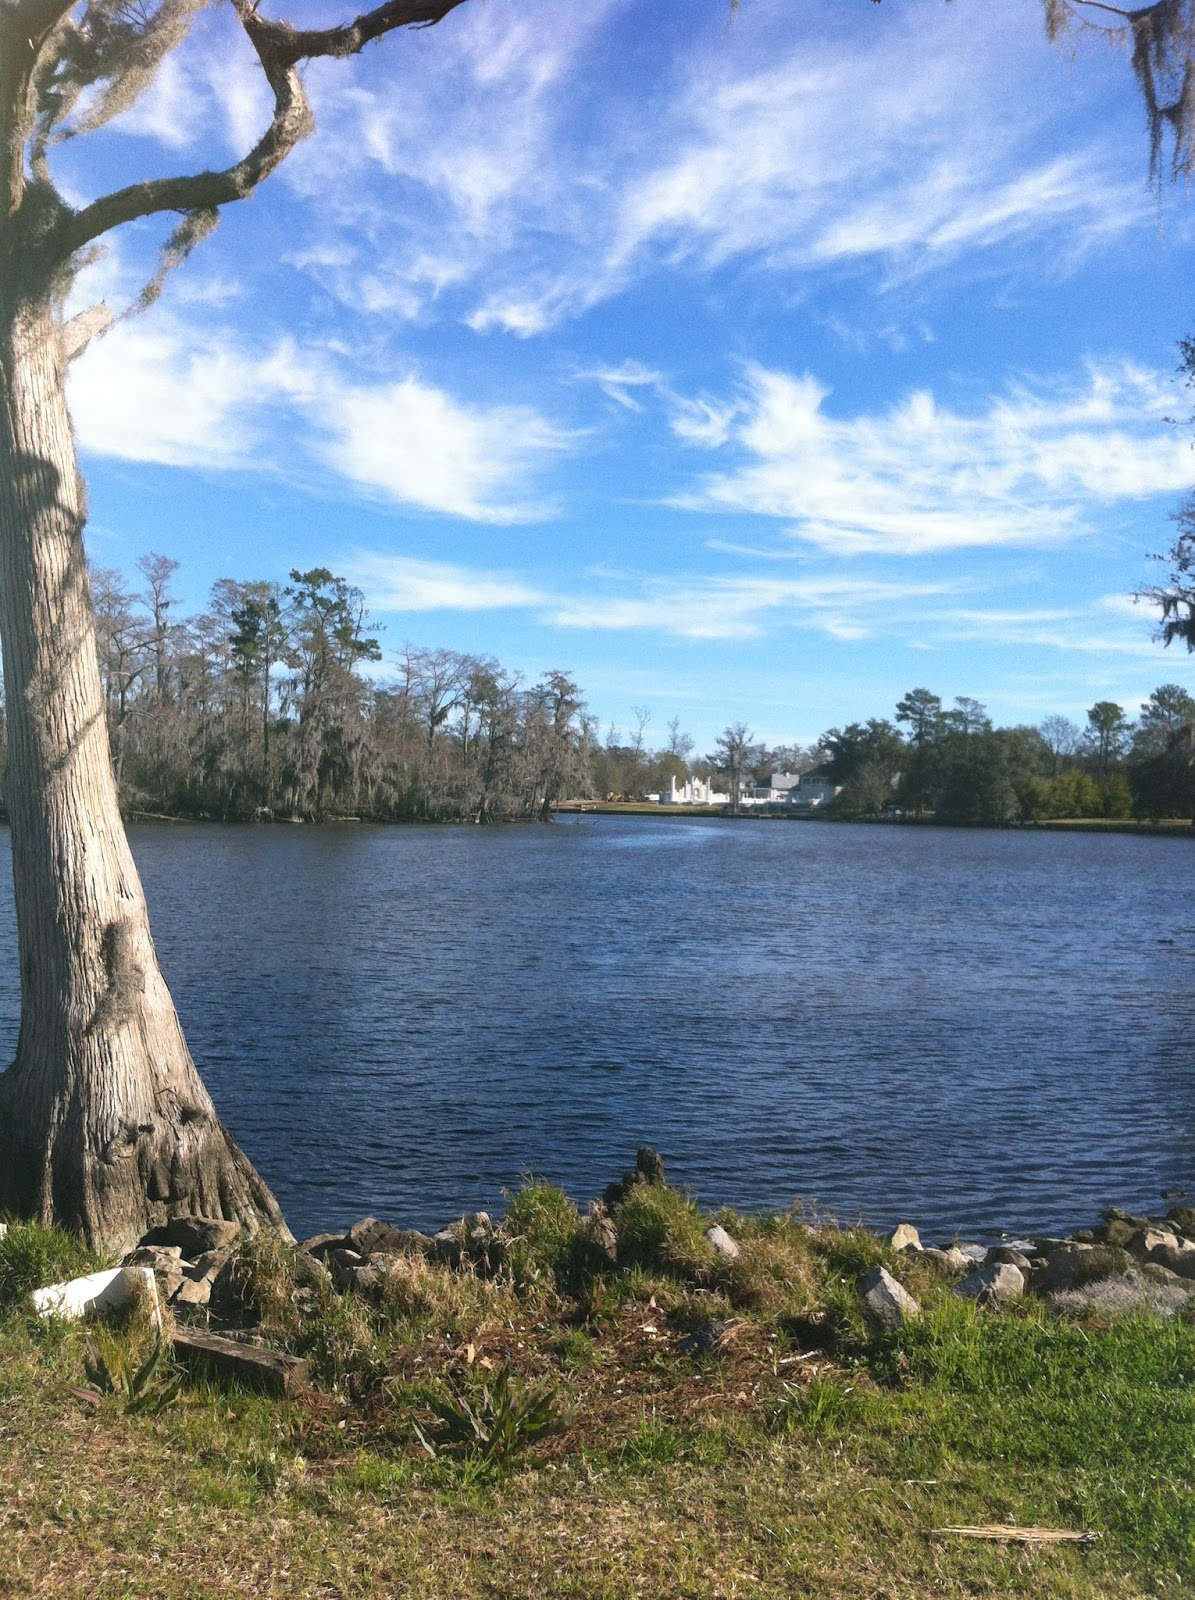 The Gypsy Boho Freedom Express: THE TCHEFUNCTE RIVER AT FAIRVIEW